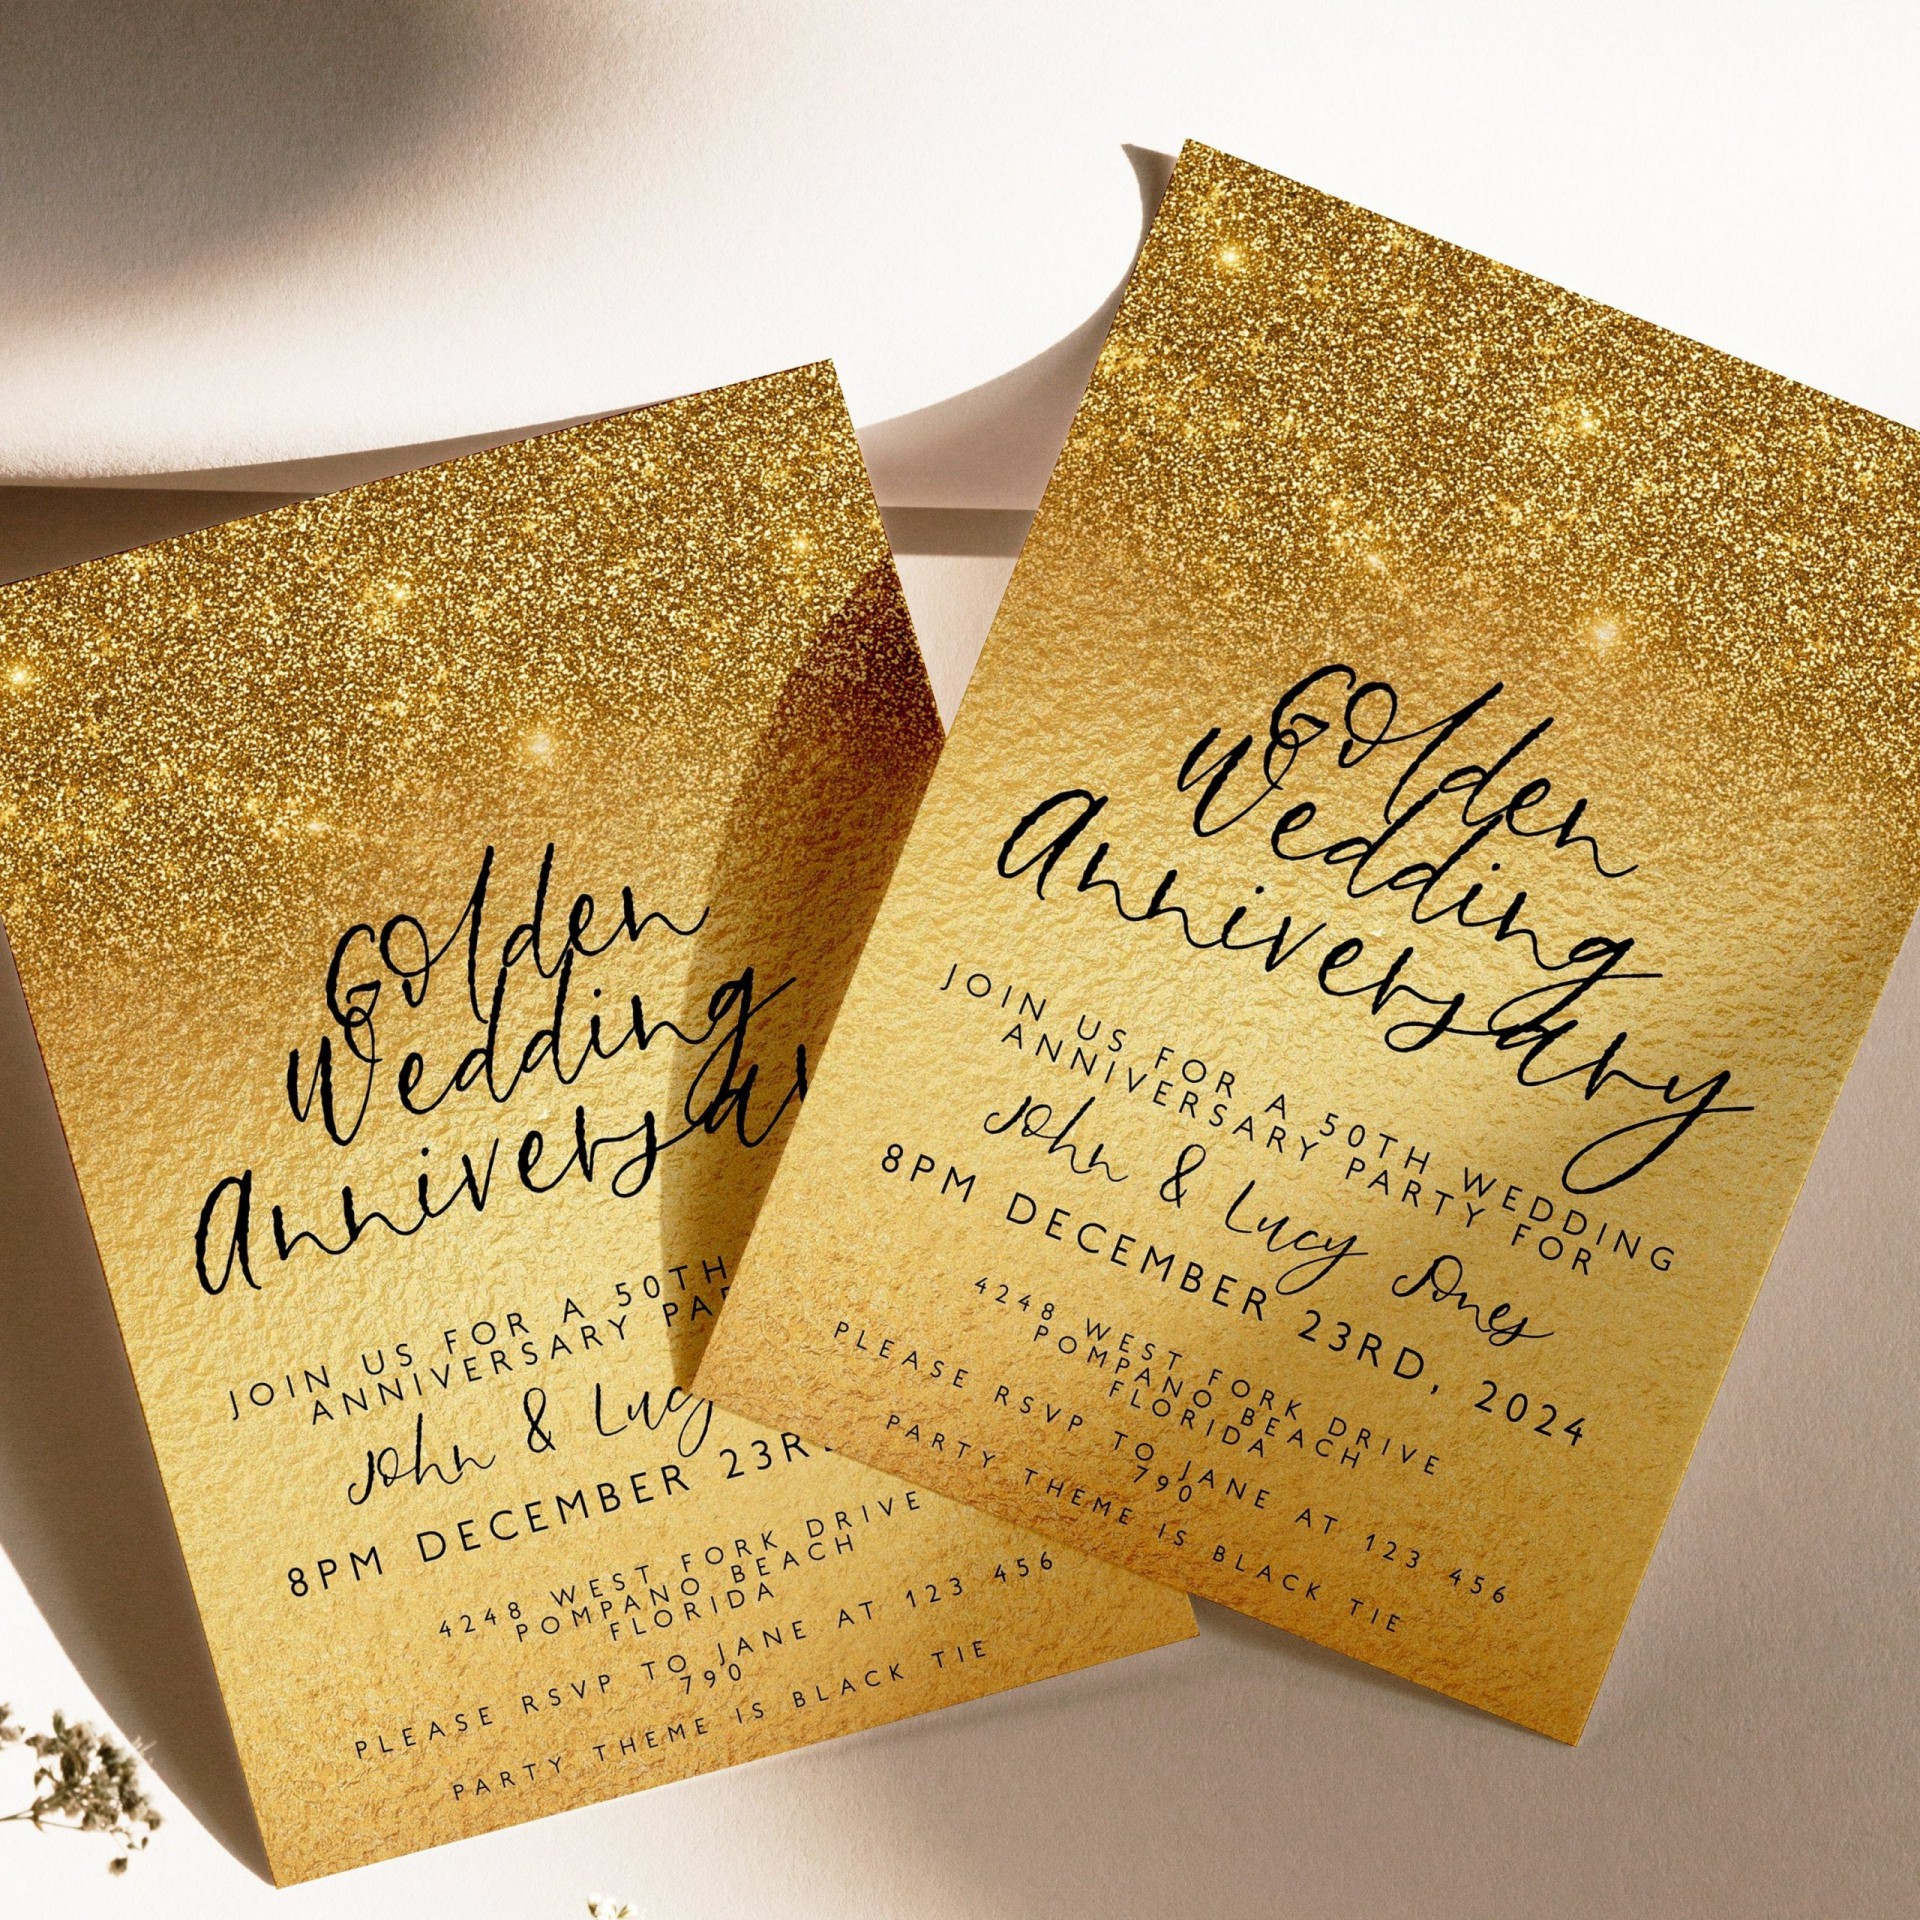 001 Excellent 50th Anniversary Invitation Template Image  Wedding Microsoft Word Free Download1920